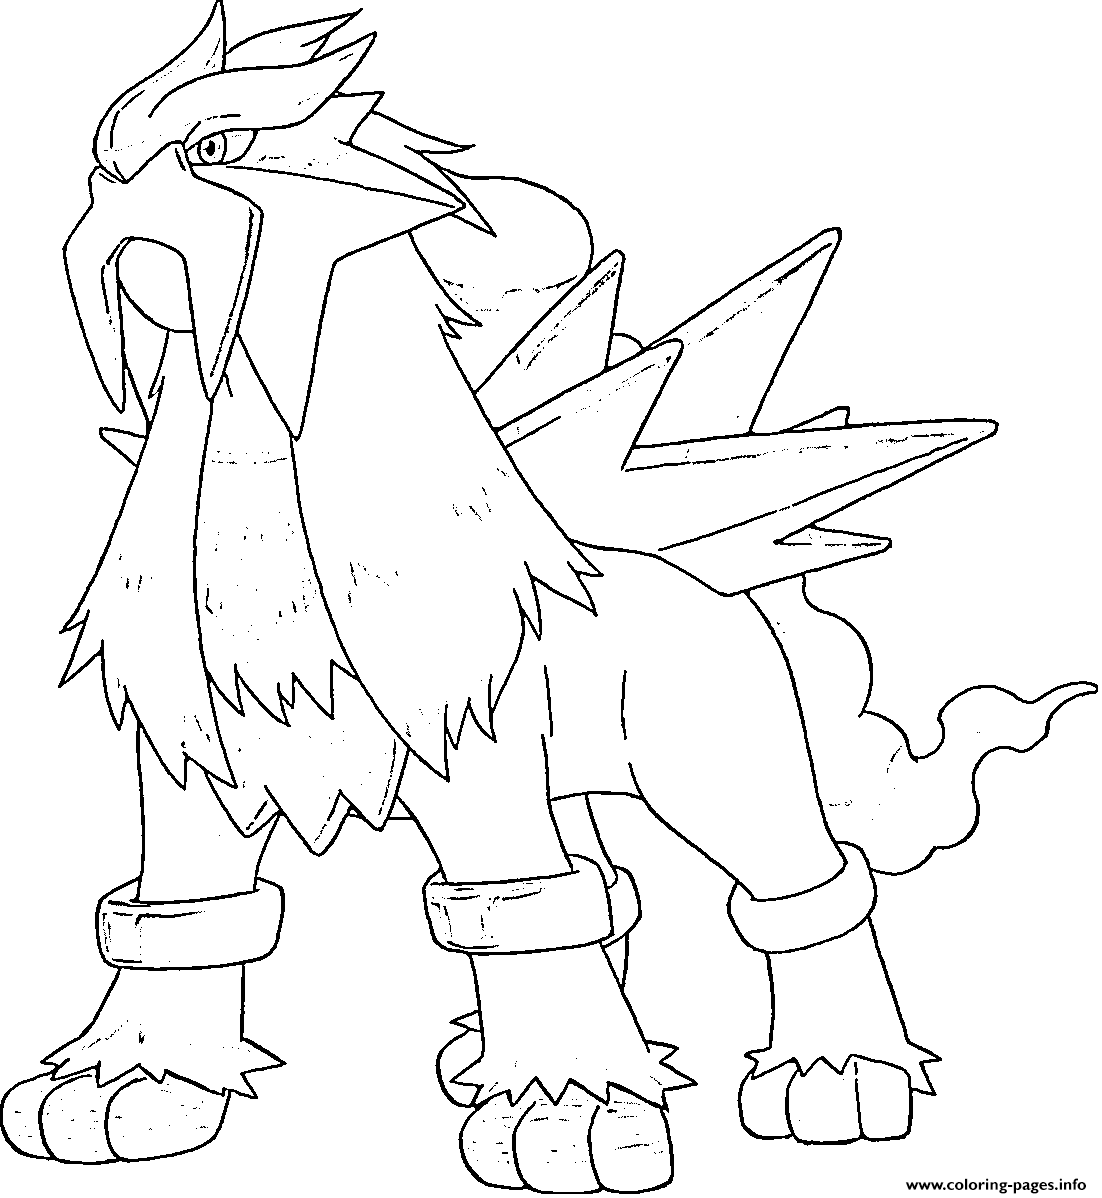 Entei Generation 2 Coloring Pages Printable